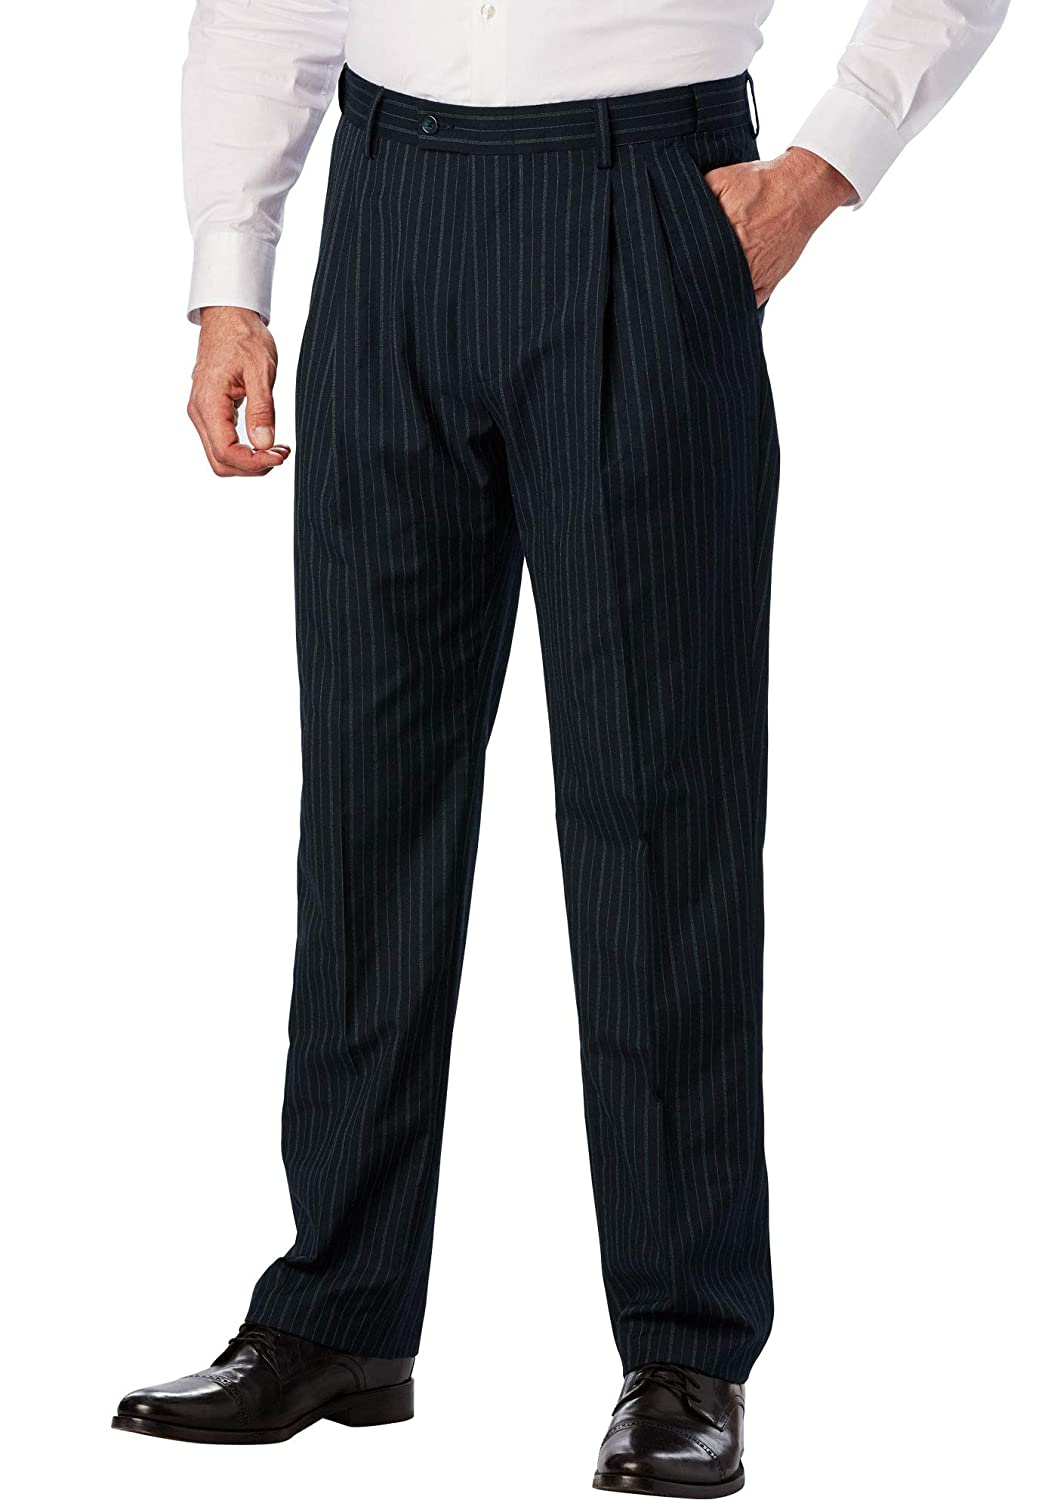 1920s Men's Pants, Trousers, Plus Fours, Knickers  Big & Tall Kingsize Signature Collection Easy Movement Pleat-Front Expandable Dress Pants Kingsize Signature Collection Mens $119.99 AT vintagedancer.com